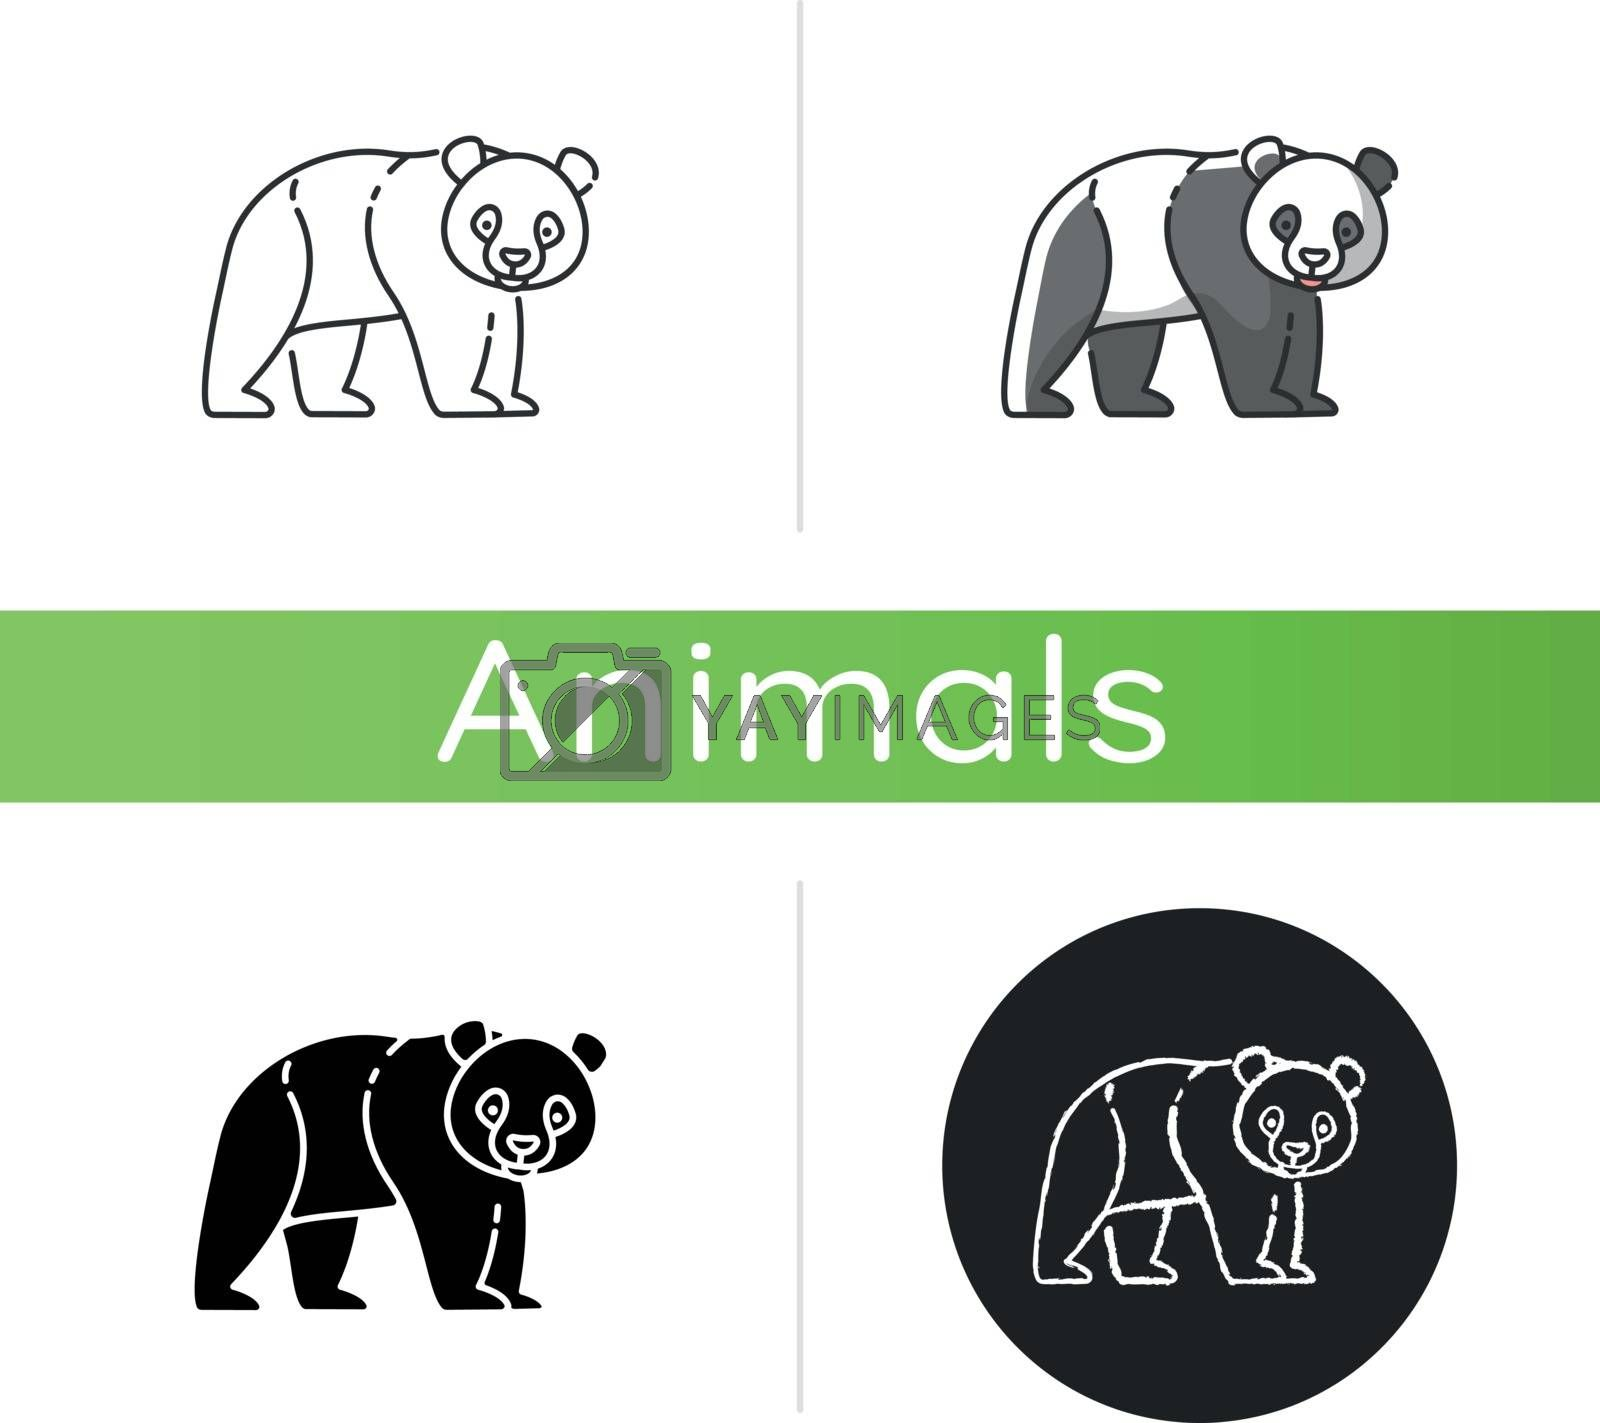 Panda bear icon. Linear black and RGB color styles. Native chinese fauna, common asian wildlife. Zoo mascot, oriental forest inhabitant. Black and white bear isolated isolated vector illustrations